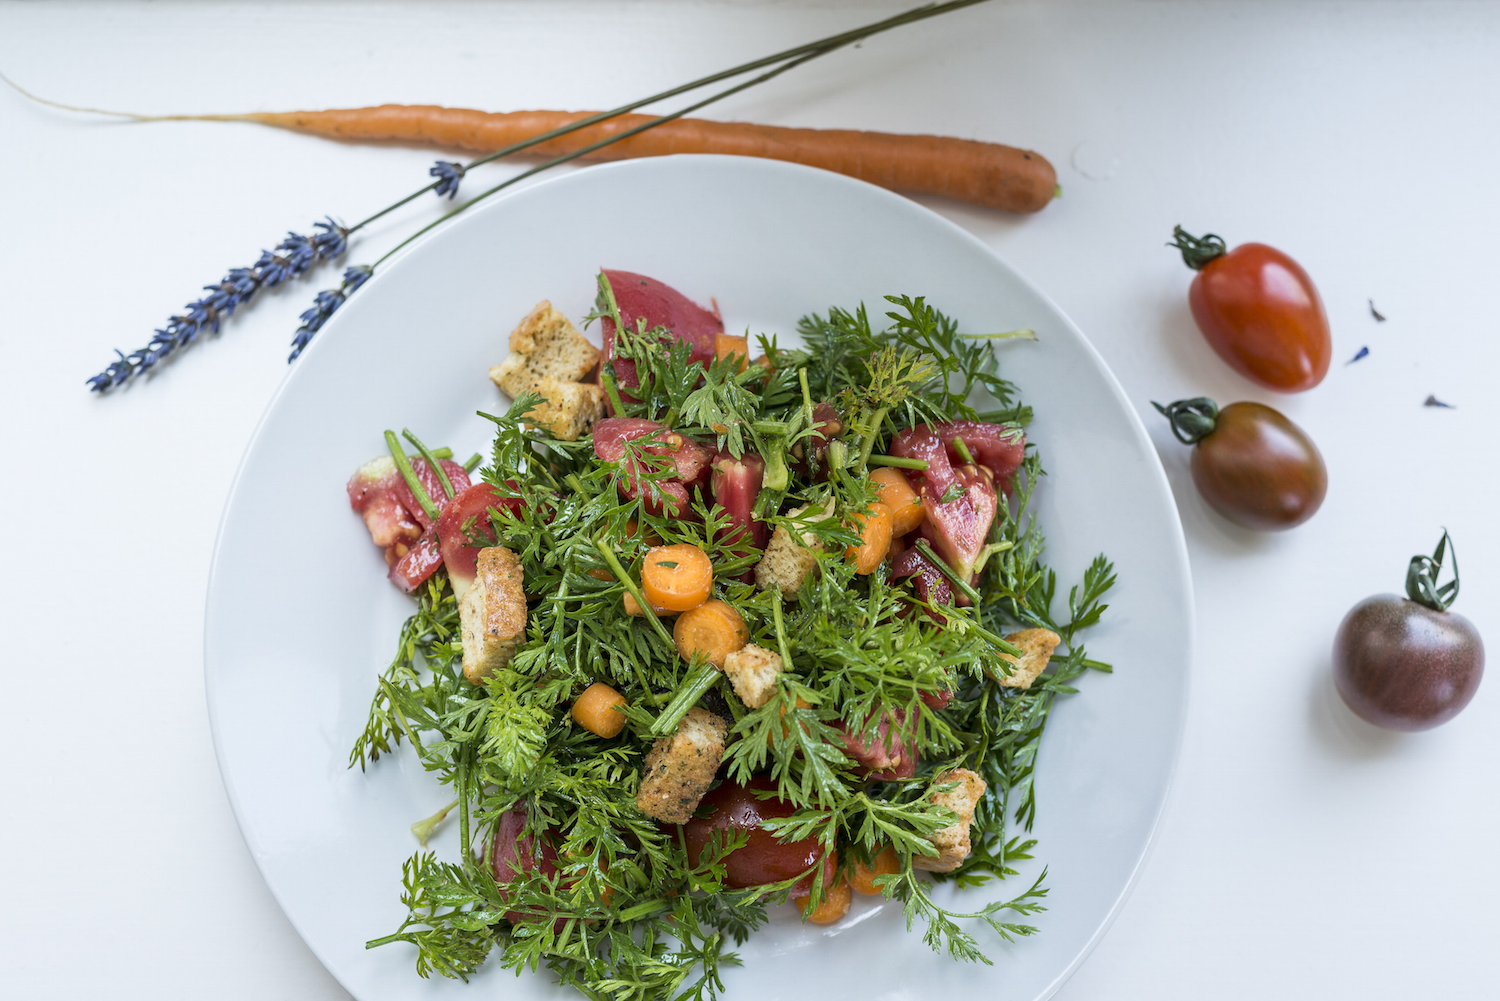 Salad with carrot leaves tomatoes carrots and croutons.jpg